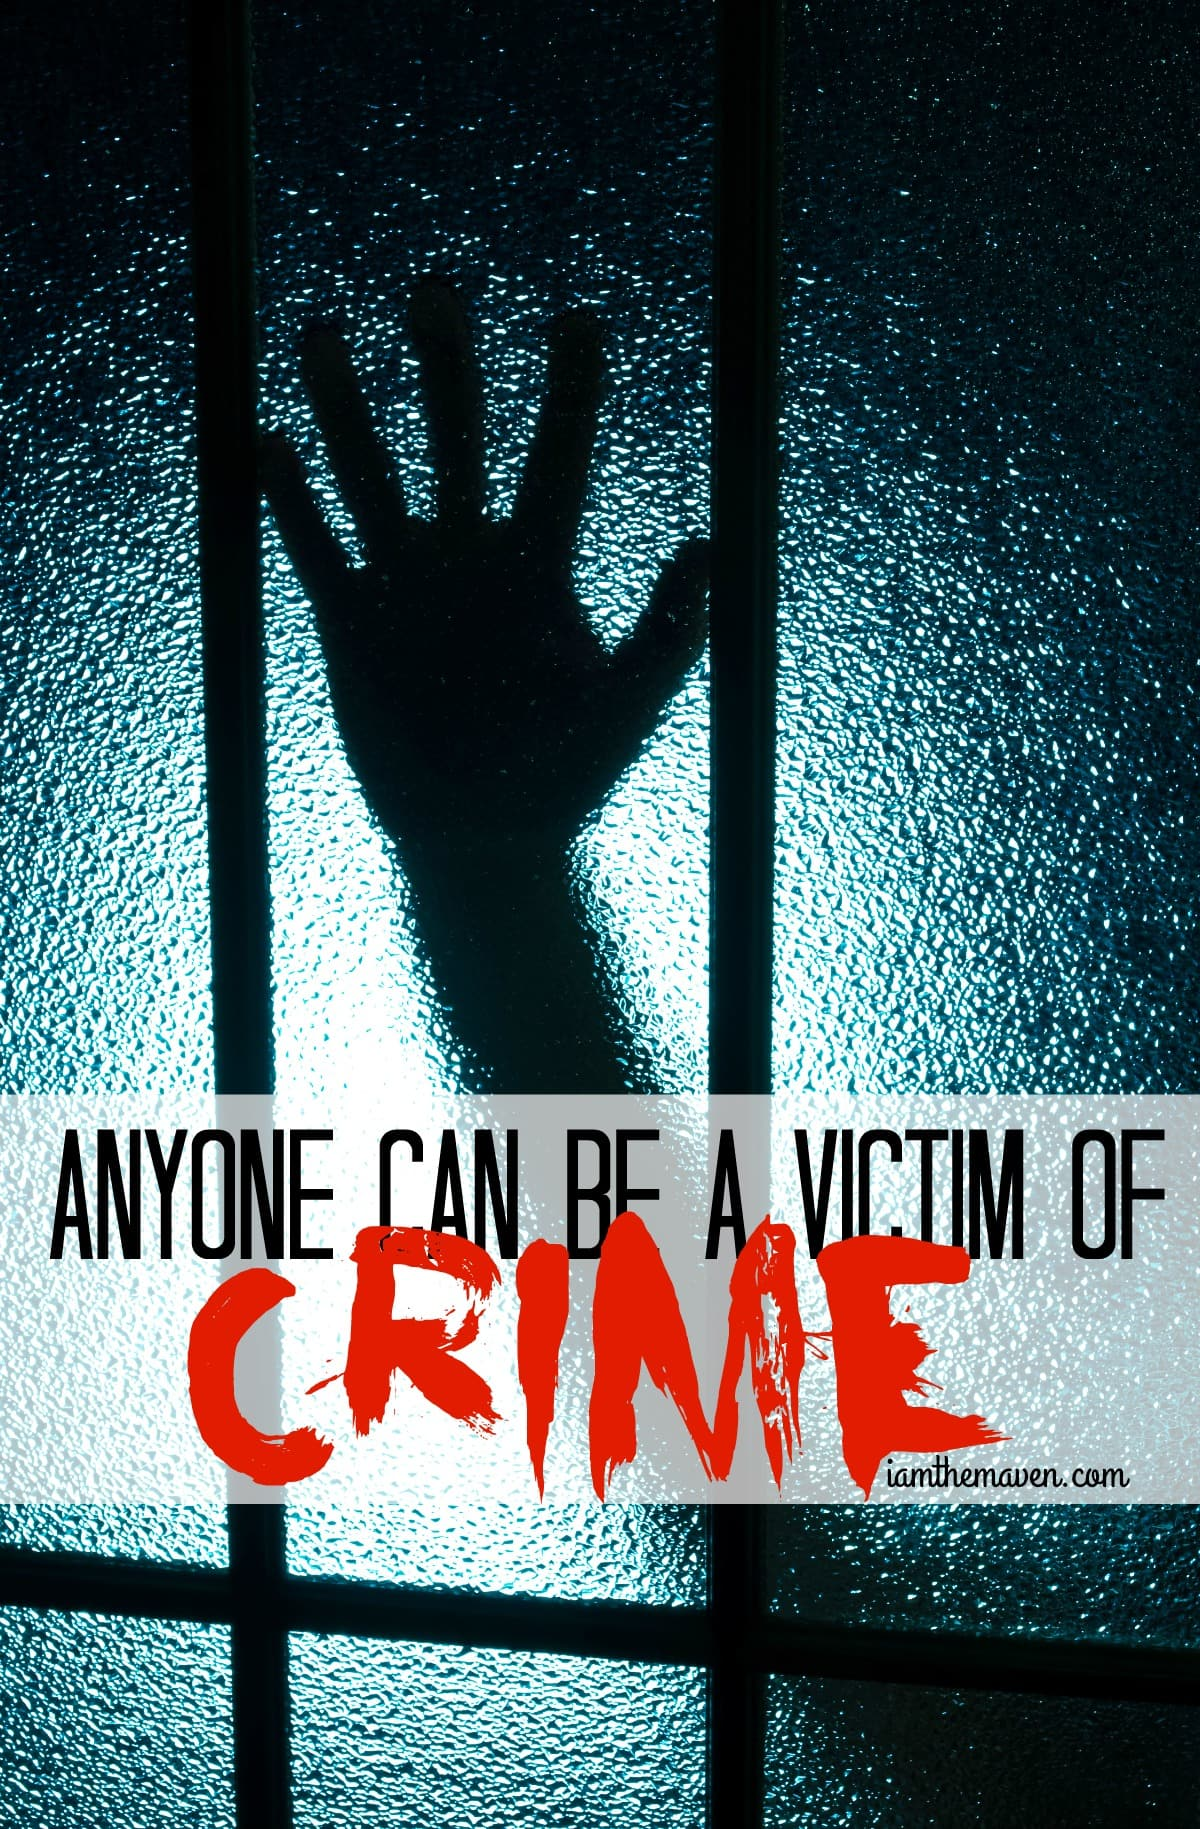 Don't be a victim of crime. #PrivacyIsNoGame AD